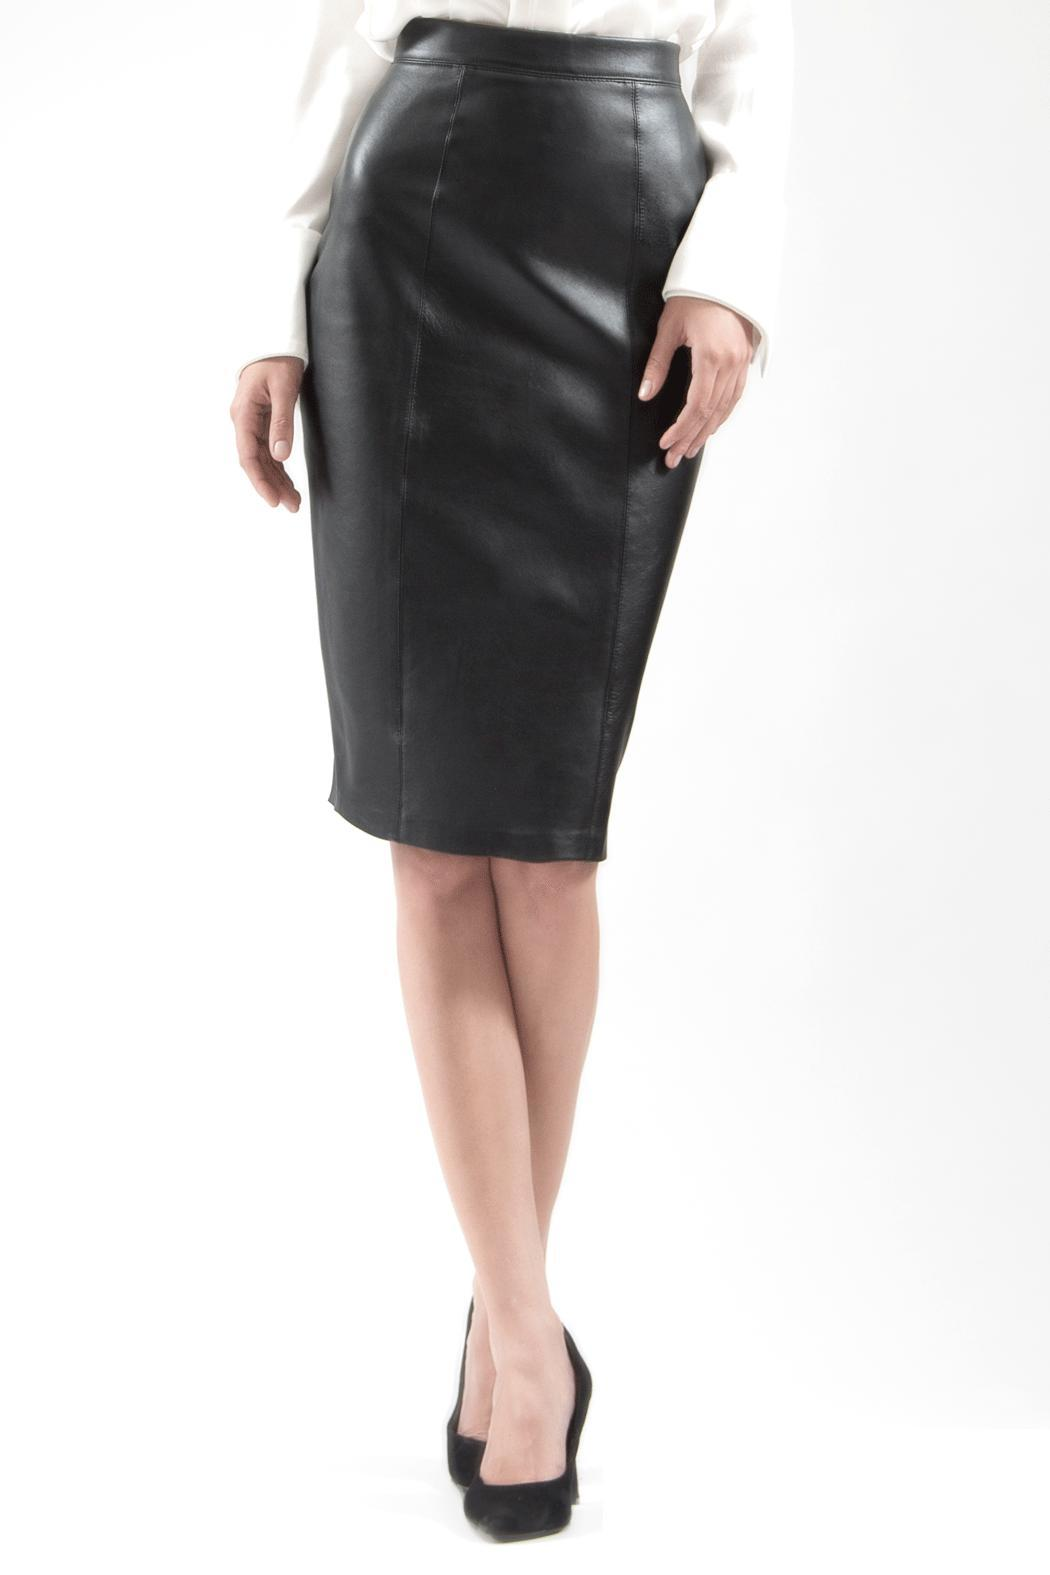 Viesca y Viesca Leather Pencil Skirt - Main Image